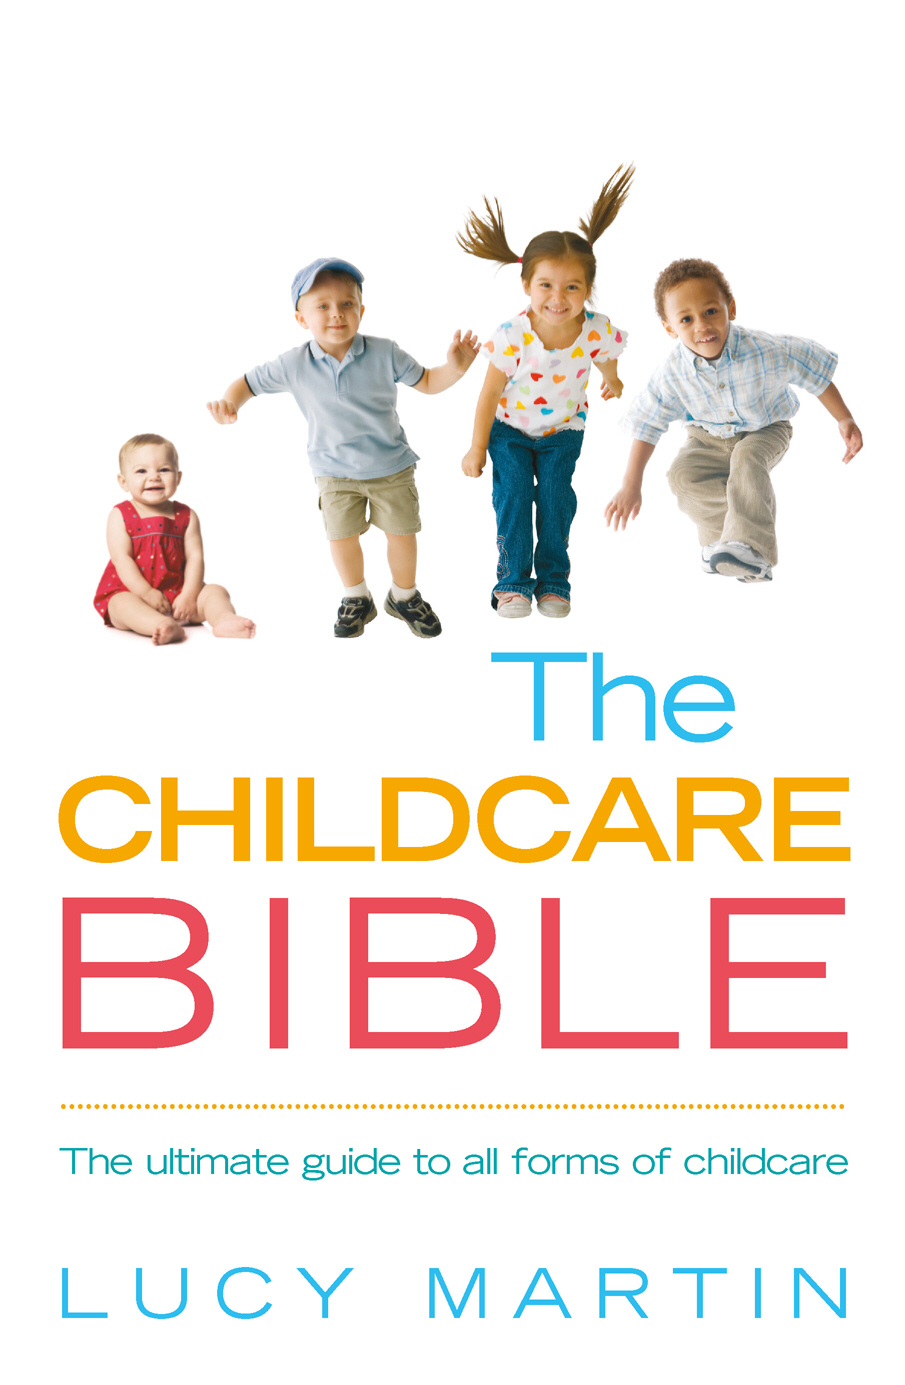 The Childcare Bible The ultimate guide to all forms of childcare: nannies,  maternity nurses,  au pairs,  nurseries,  childminders,  relatives and babysitt